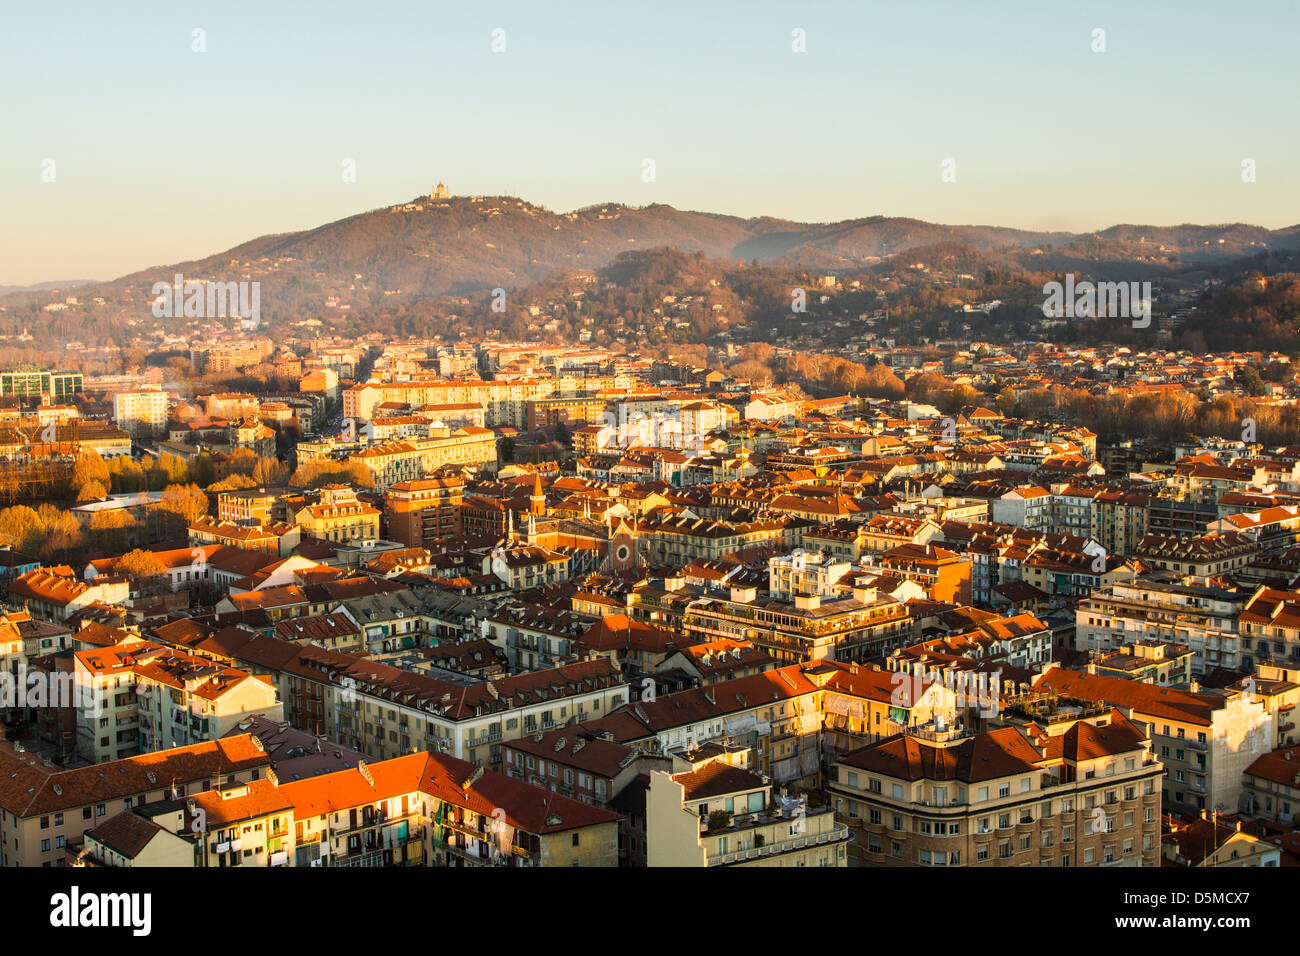 View of the city of Turin from the top of Mole Antonelliana, with the Hill of Superga in the background. - Stock Image